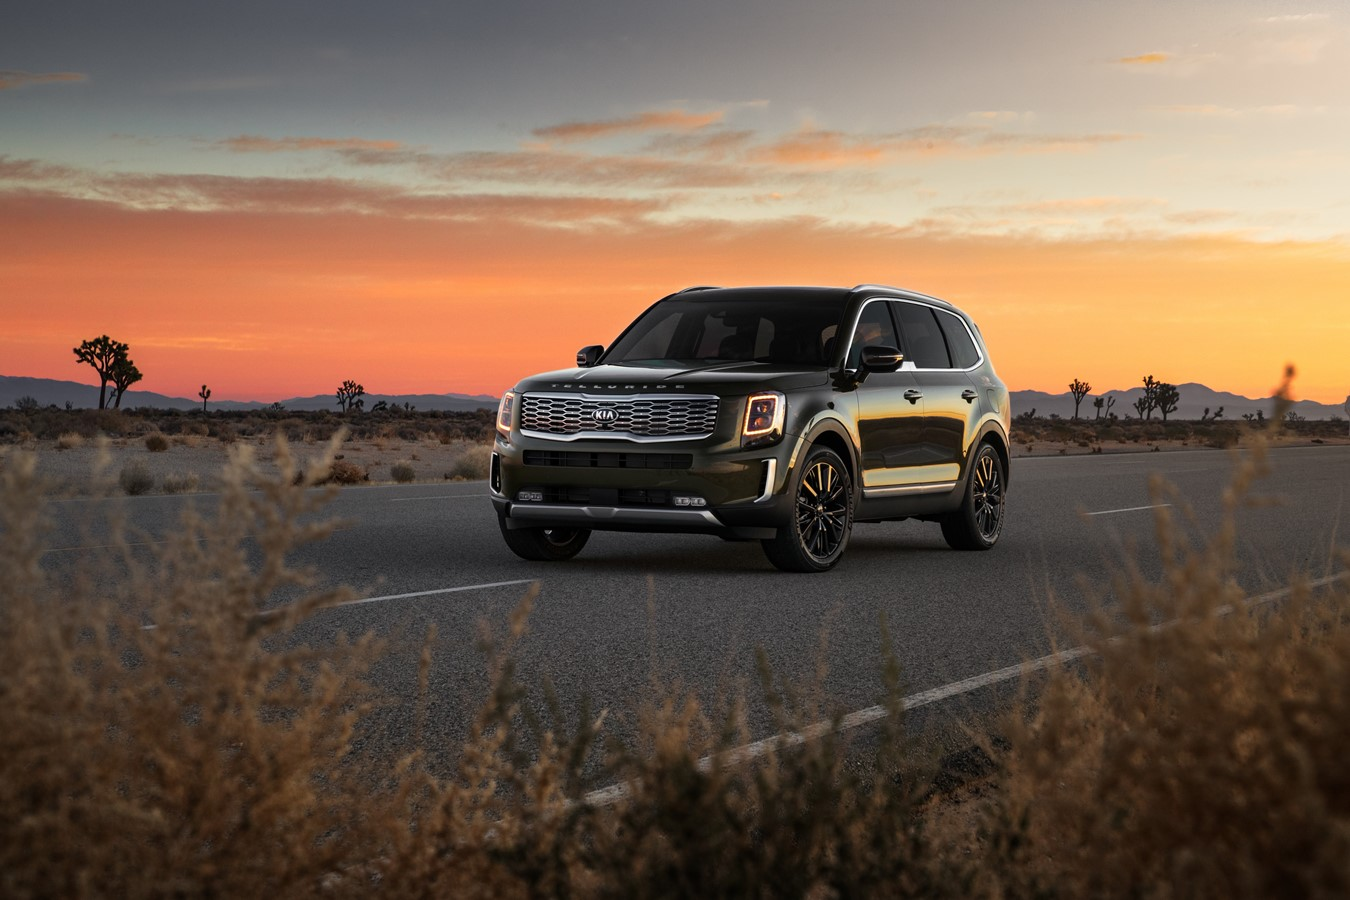 Check Out What Makes The Kia Telluride a Winner